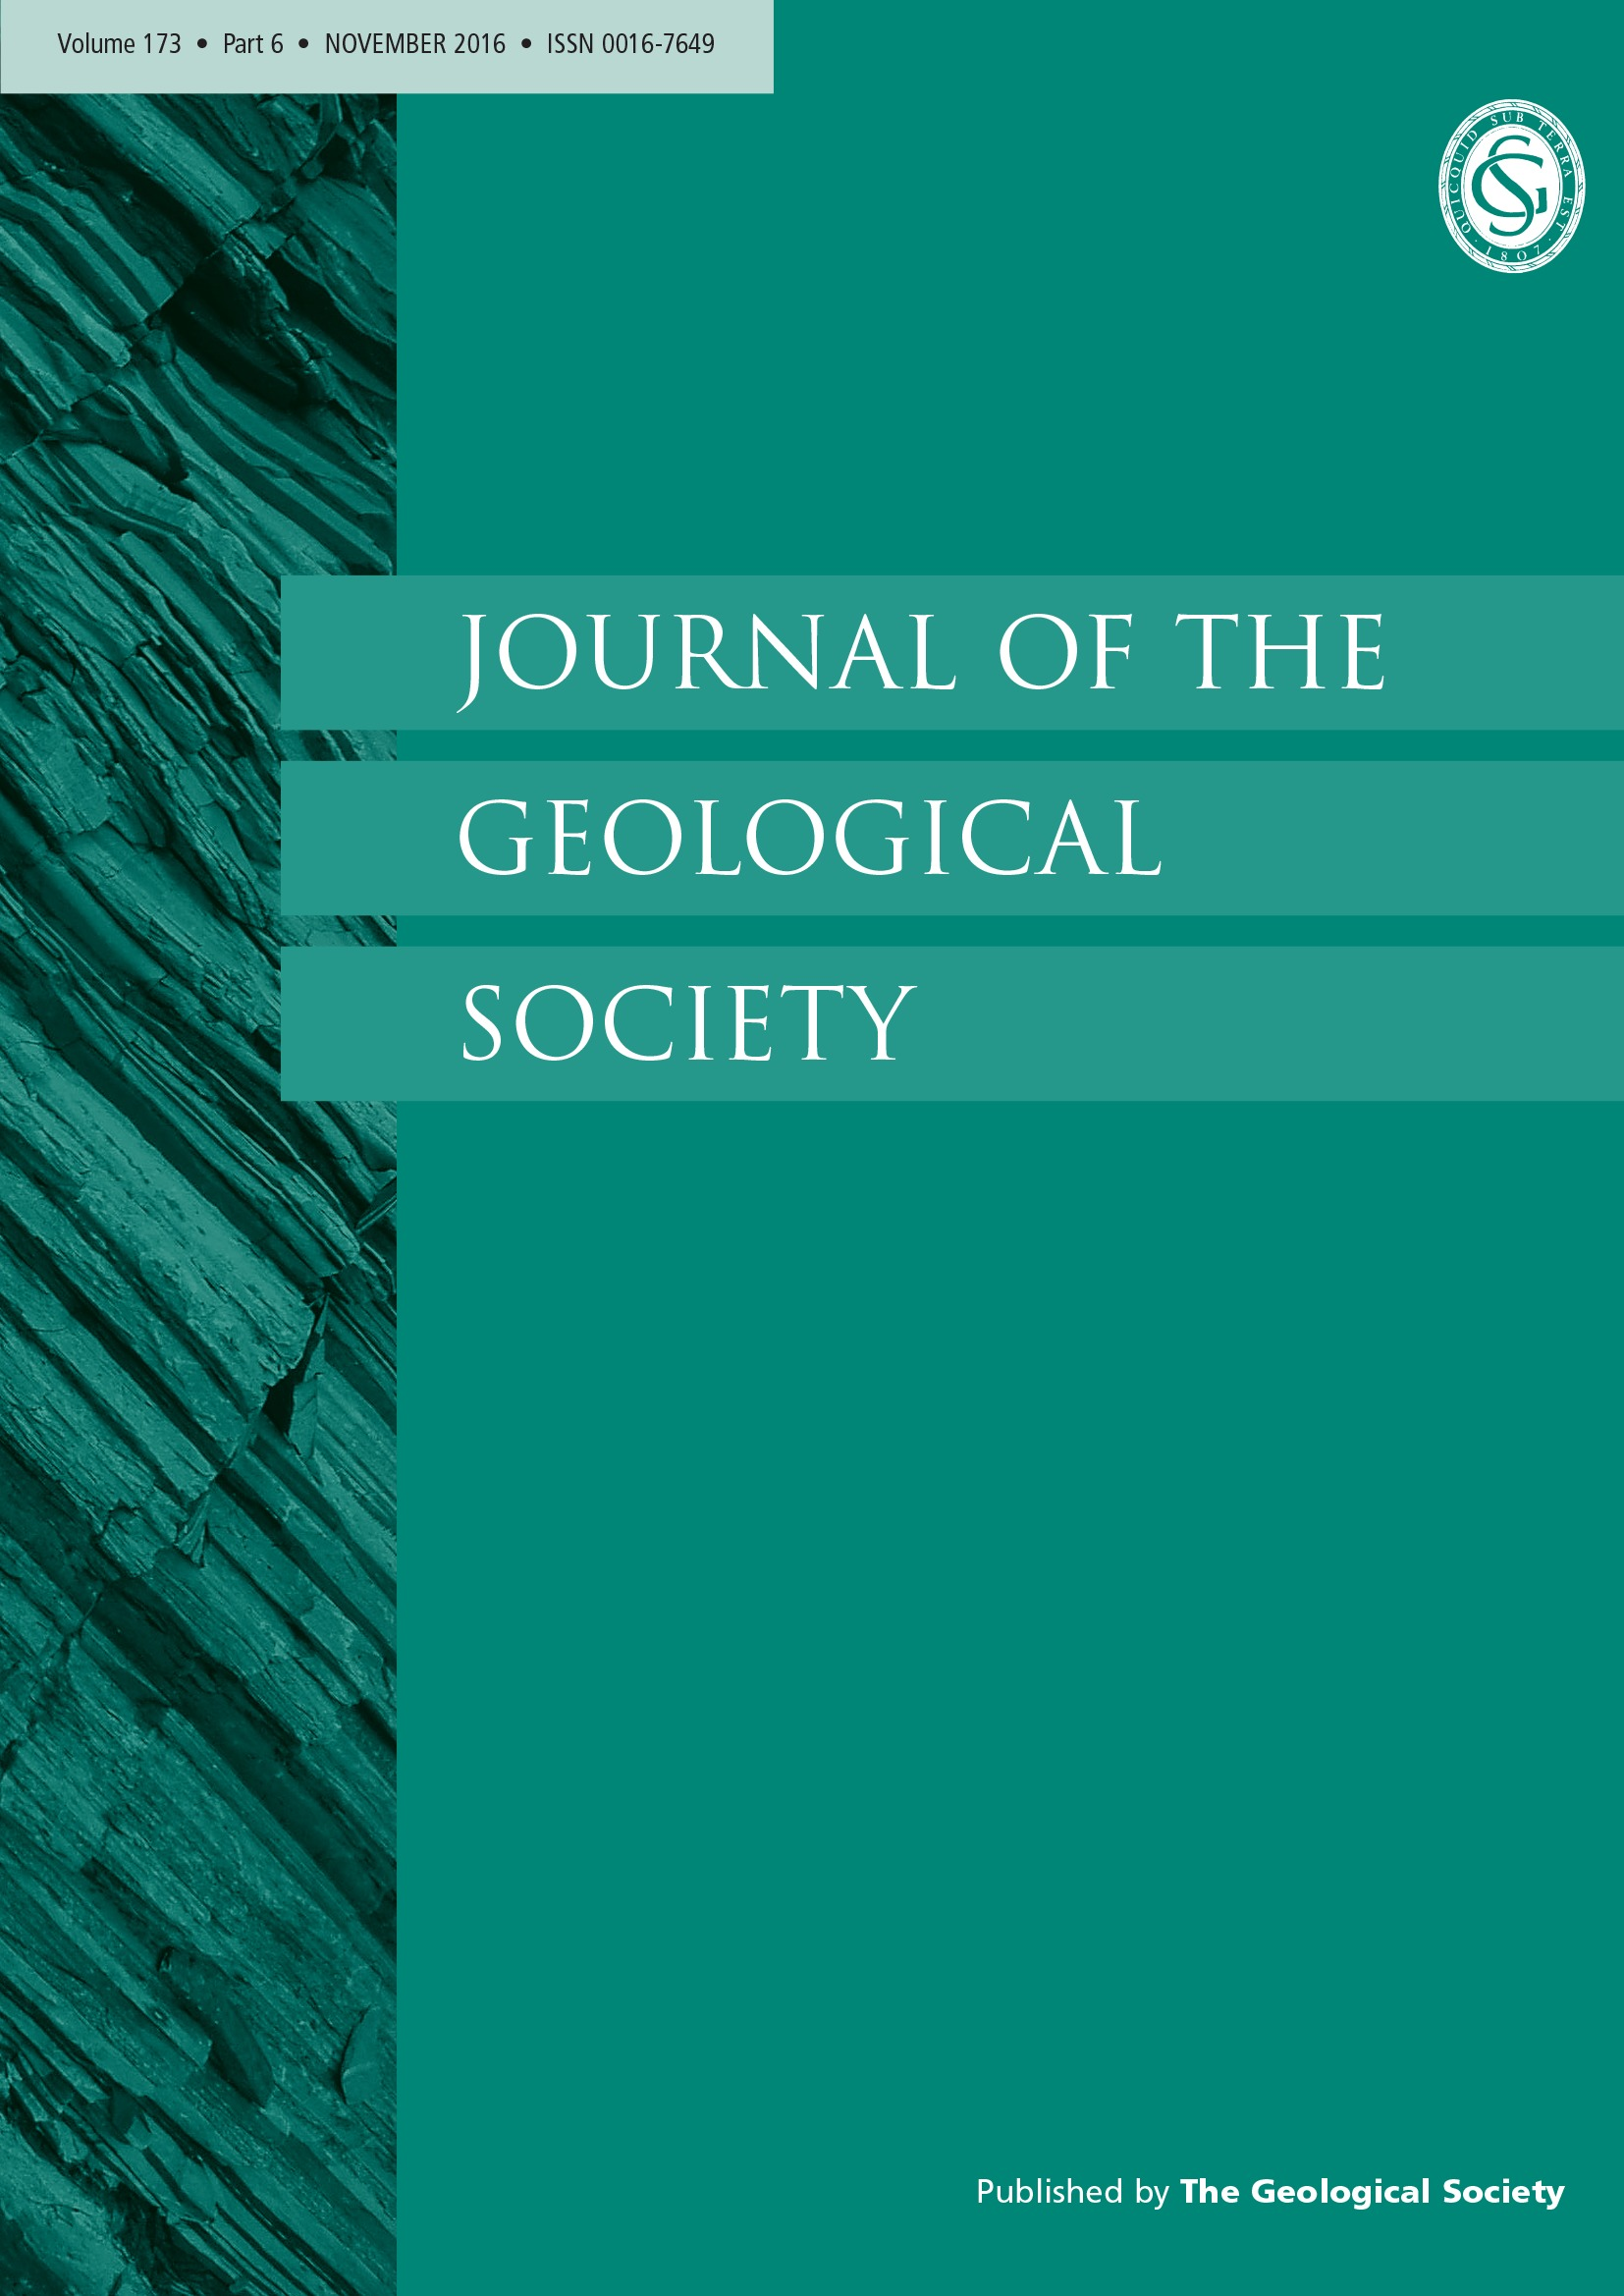 Palaeocommunities, diversity and sea-level change from